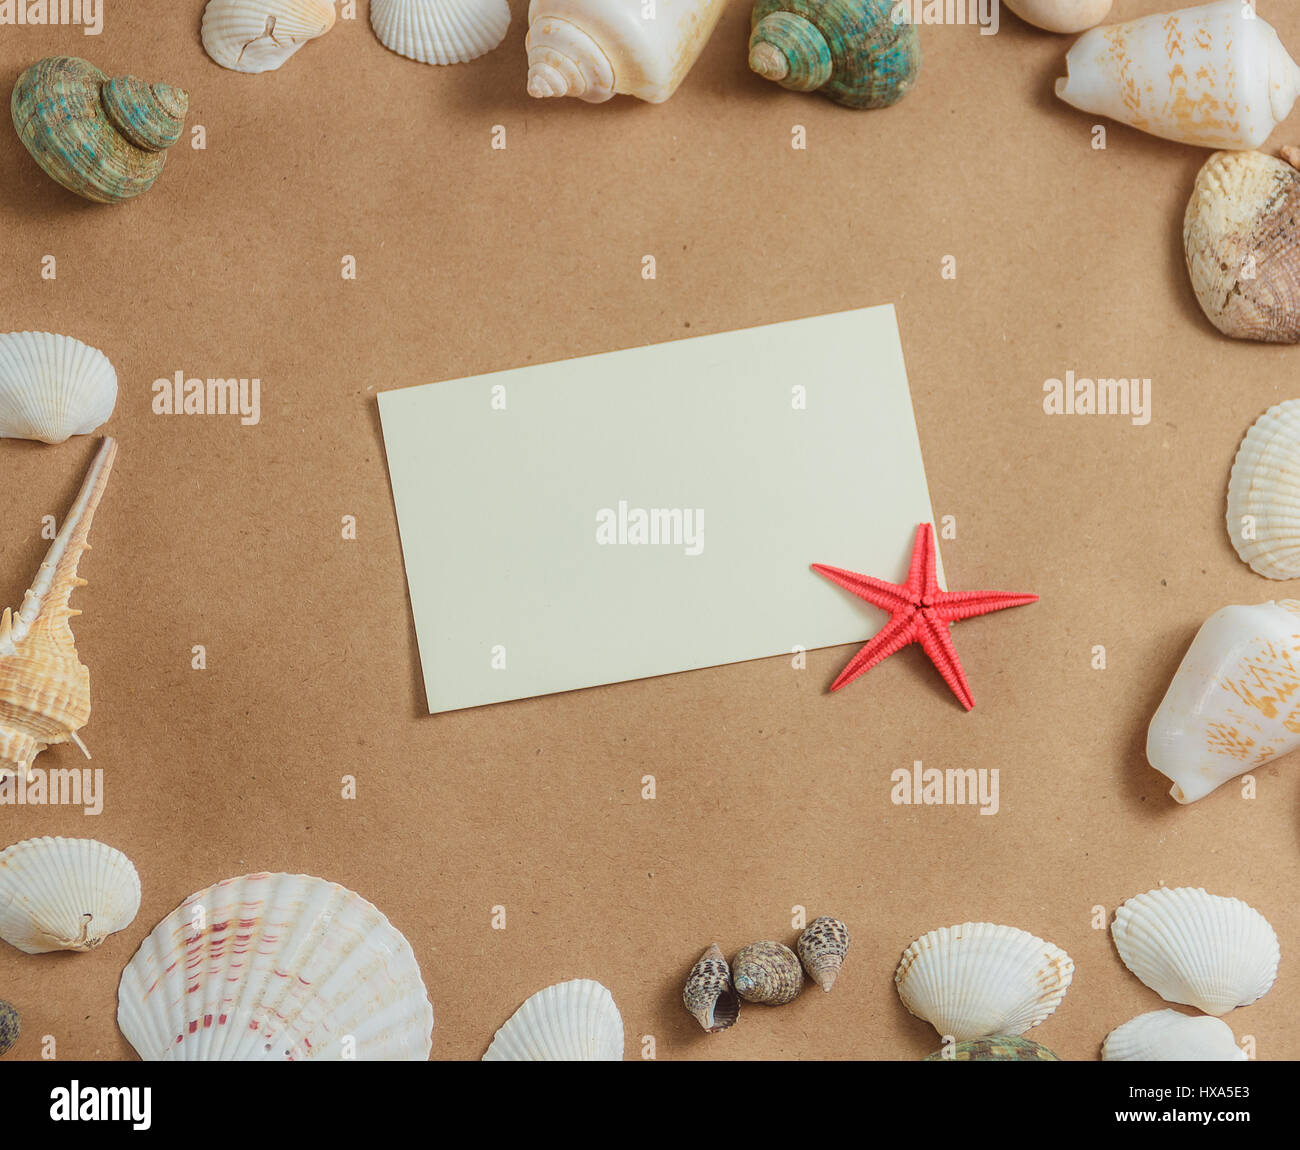 frame of seashells on light background with blank card and starfish. flat view. - Stock Image